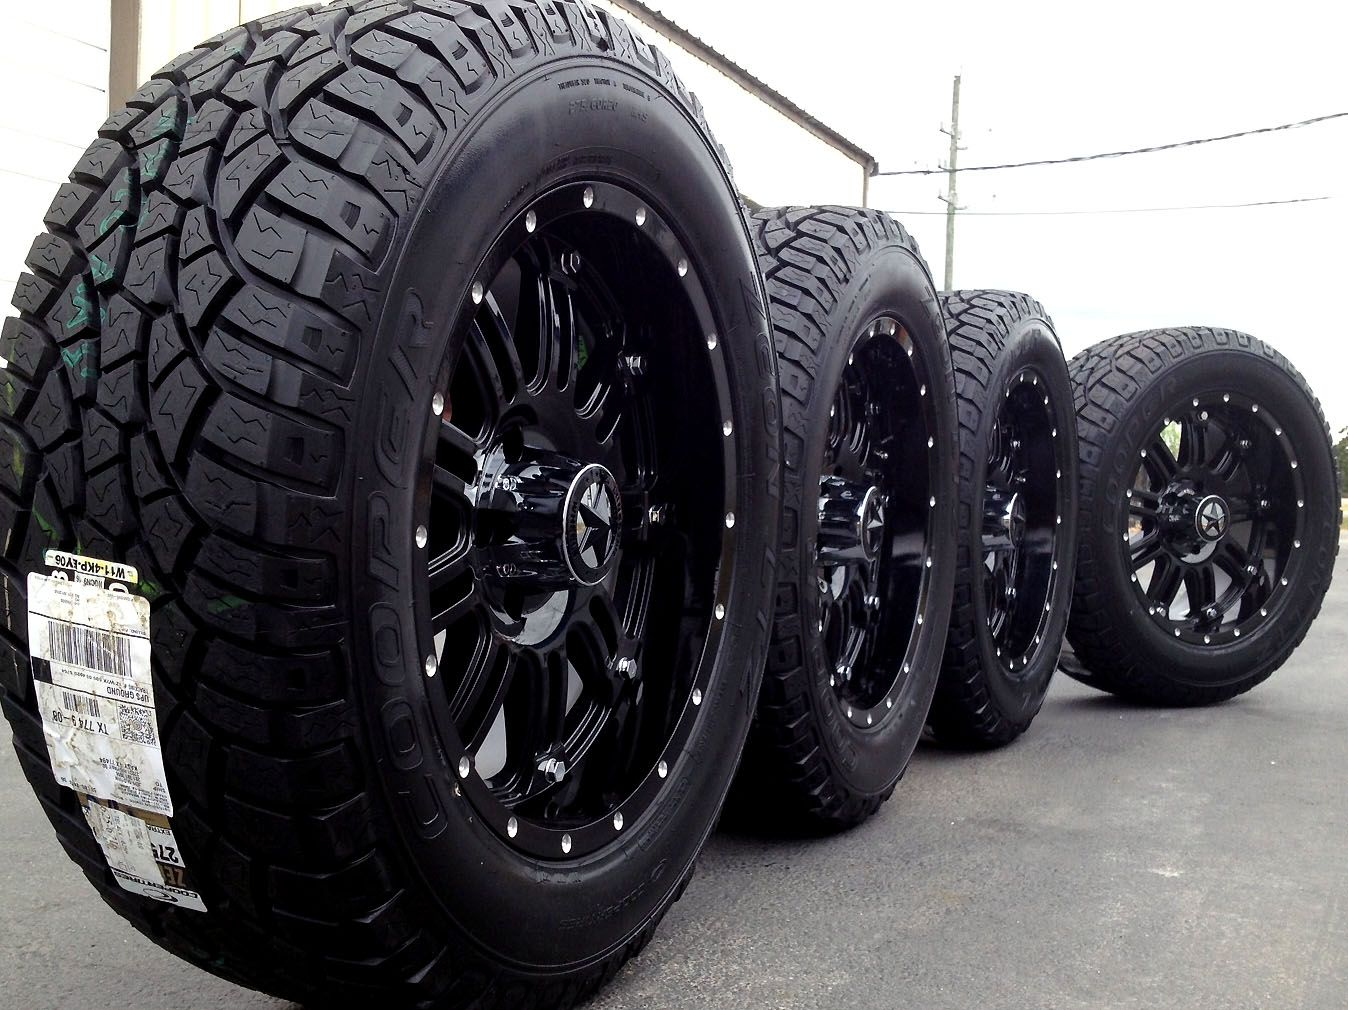 Black Truck Rims And Tires Truck Rims And Tires Truck Rims Rims And Tires